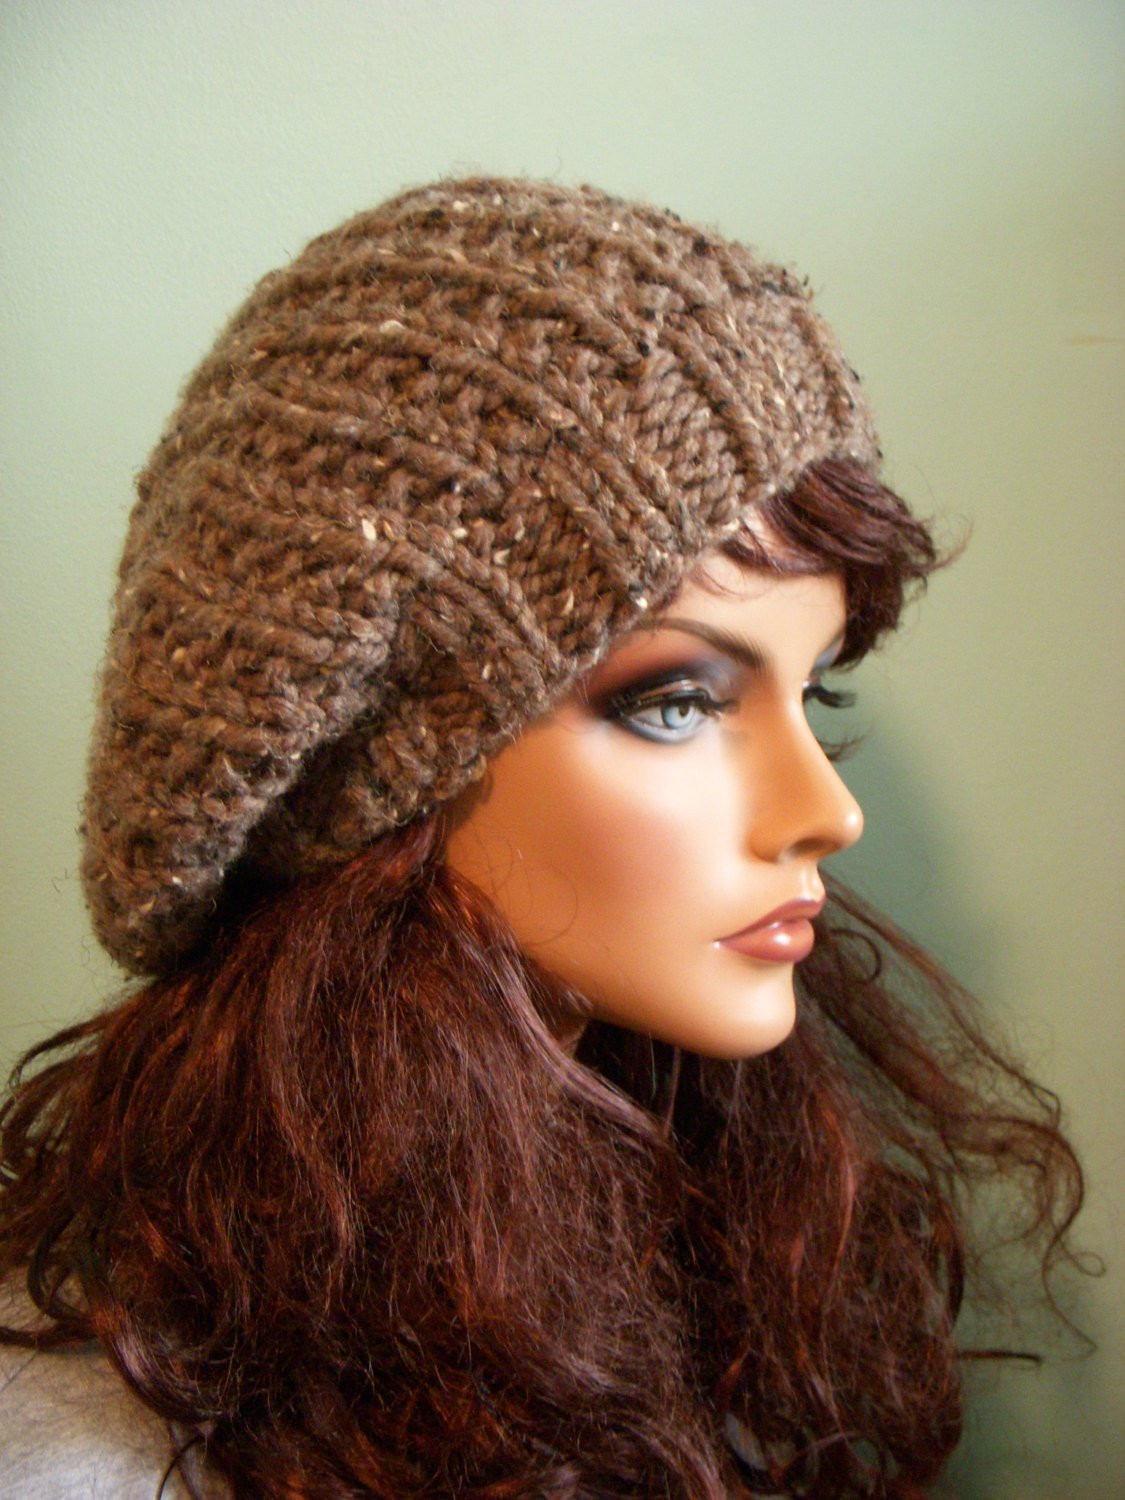 Awesome Slouchy Knit Hat Brown Tweed Beret Knit Tam Beanie Knit Slouchy Beanie Of Lovely 42 Images Knit Slouchy Beanie